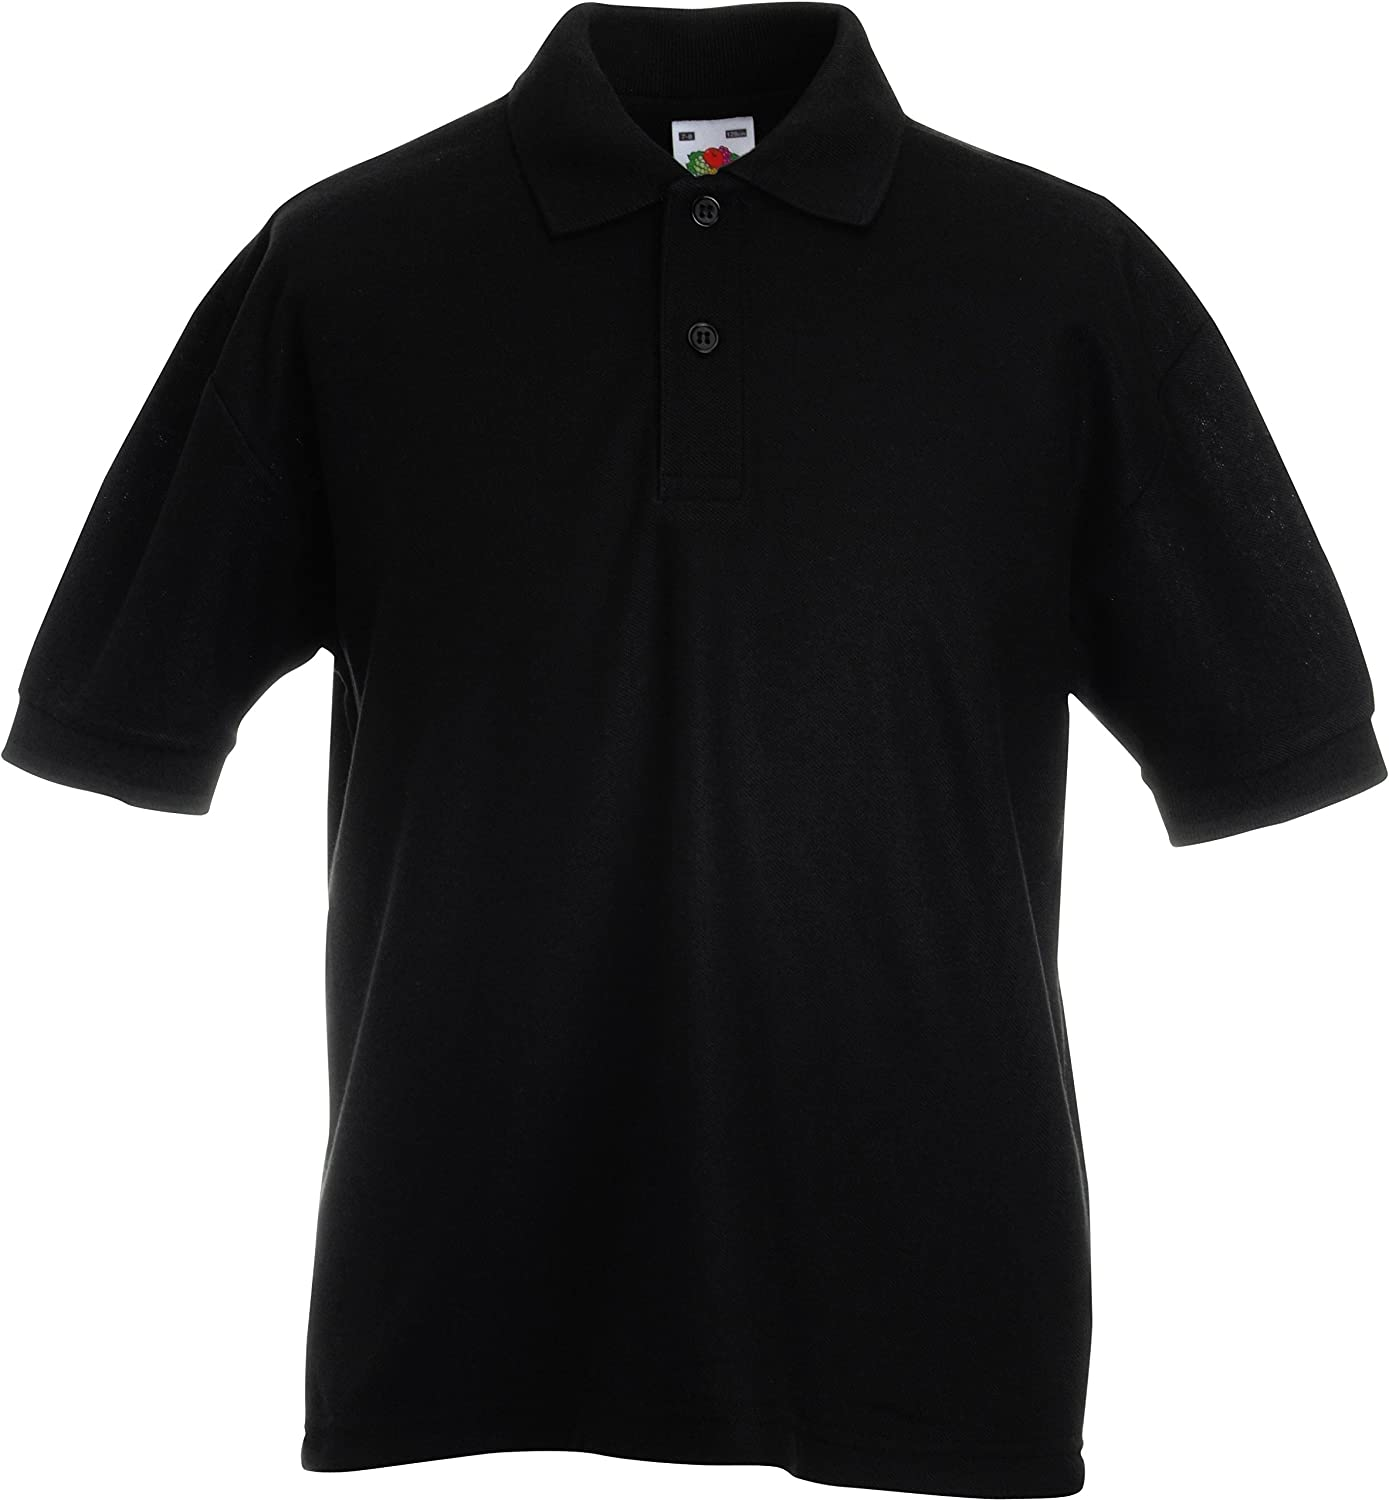 12 COLOURS FRUIT OF THE LOOM CHILDRENS UNISEX PIQUE POLO SHIRT AGE - 14//15, BLACK